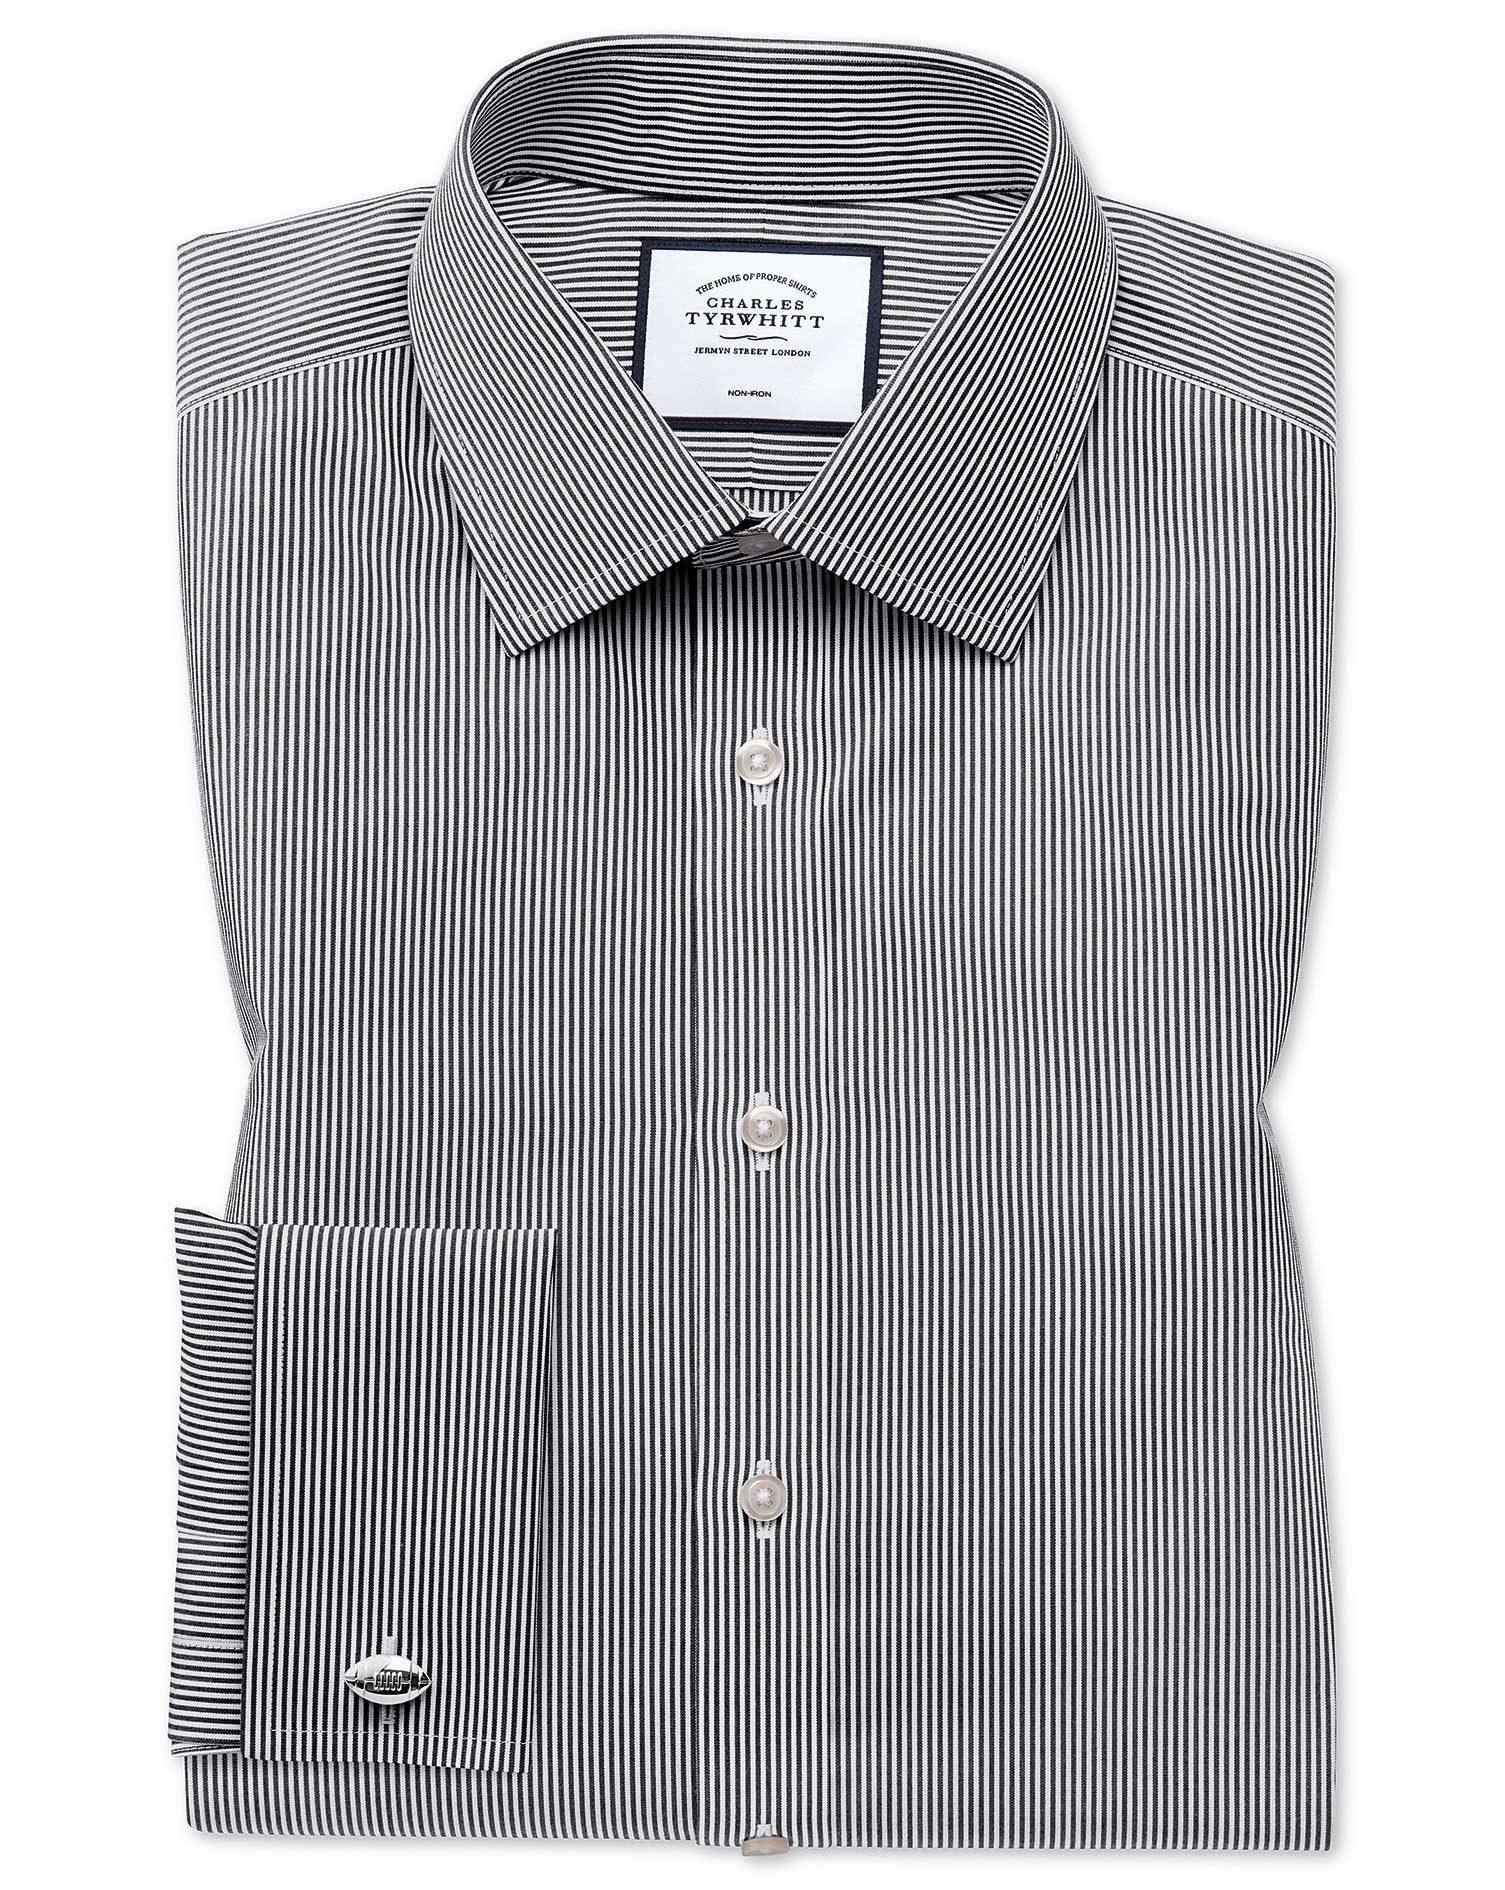 Classic Fit Non-Iron Black Bengal Stripe Cotton Formal Shirt Double Cuff Size 17/36 by Charles Tyrwh